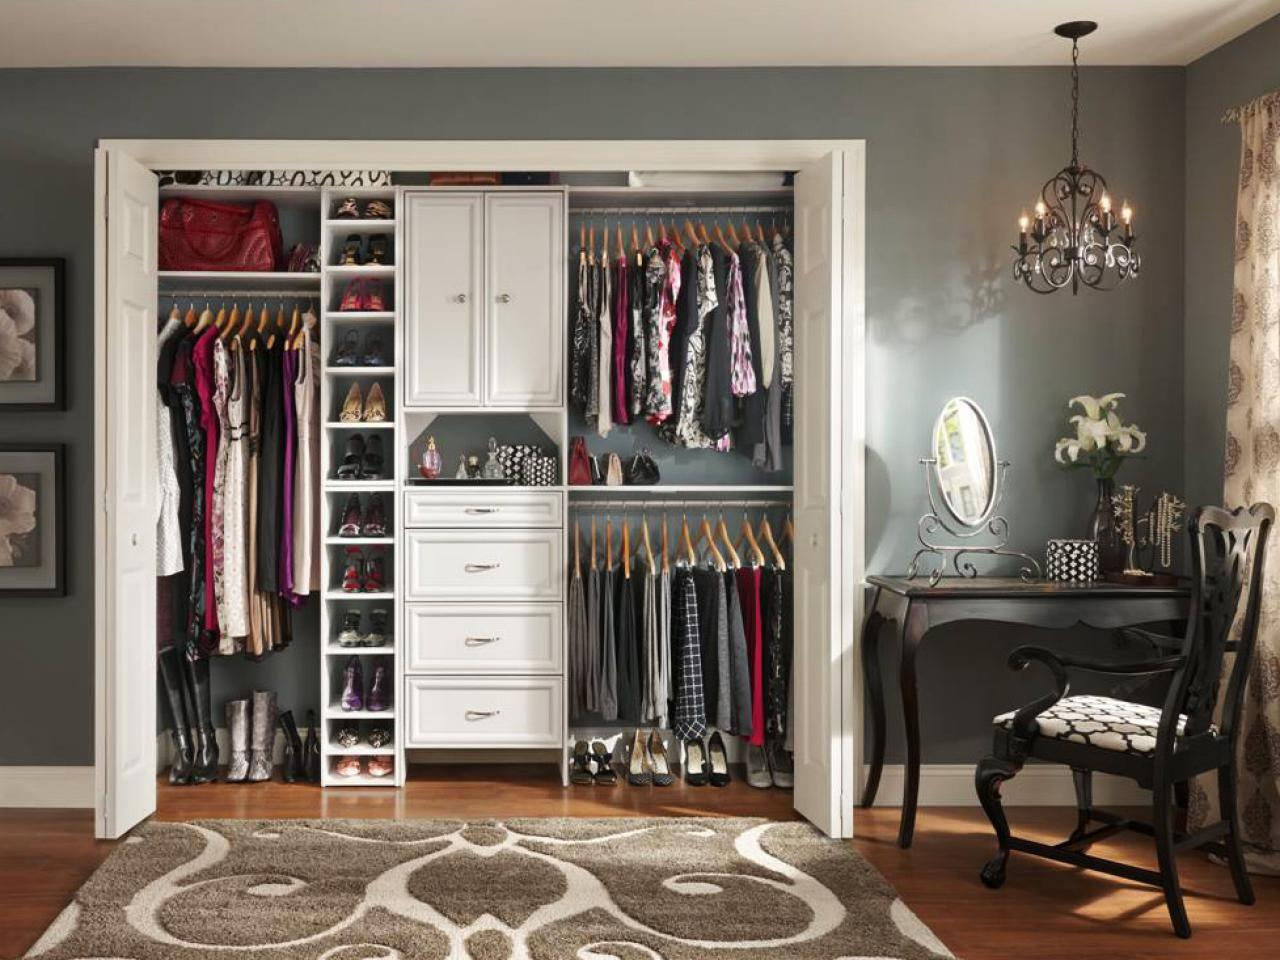 Closet Organization Tips small closet organization ideas: pictures, options & tips | hgtv